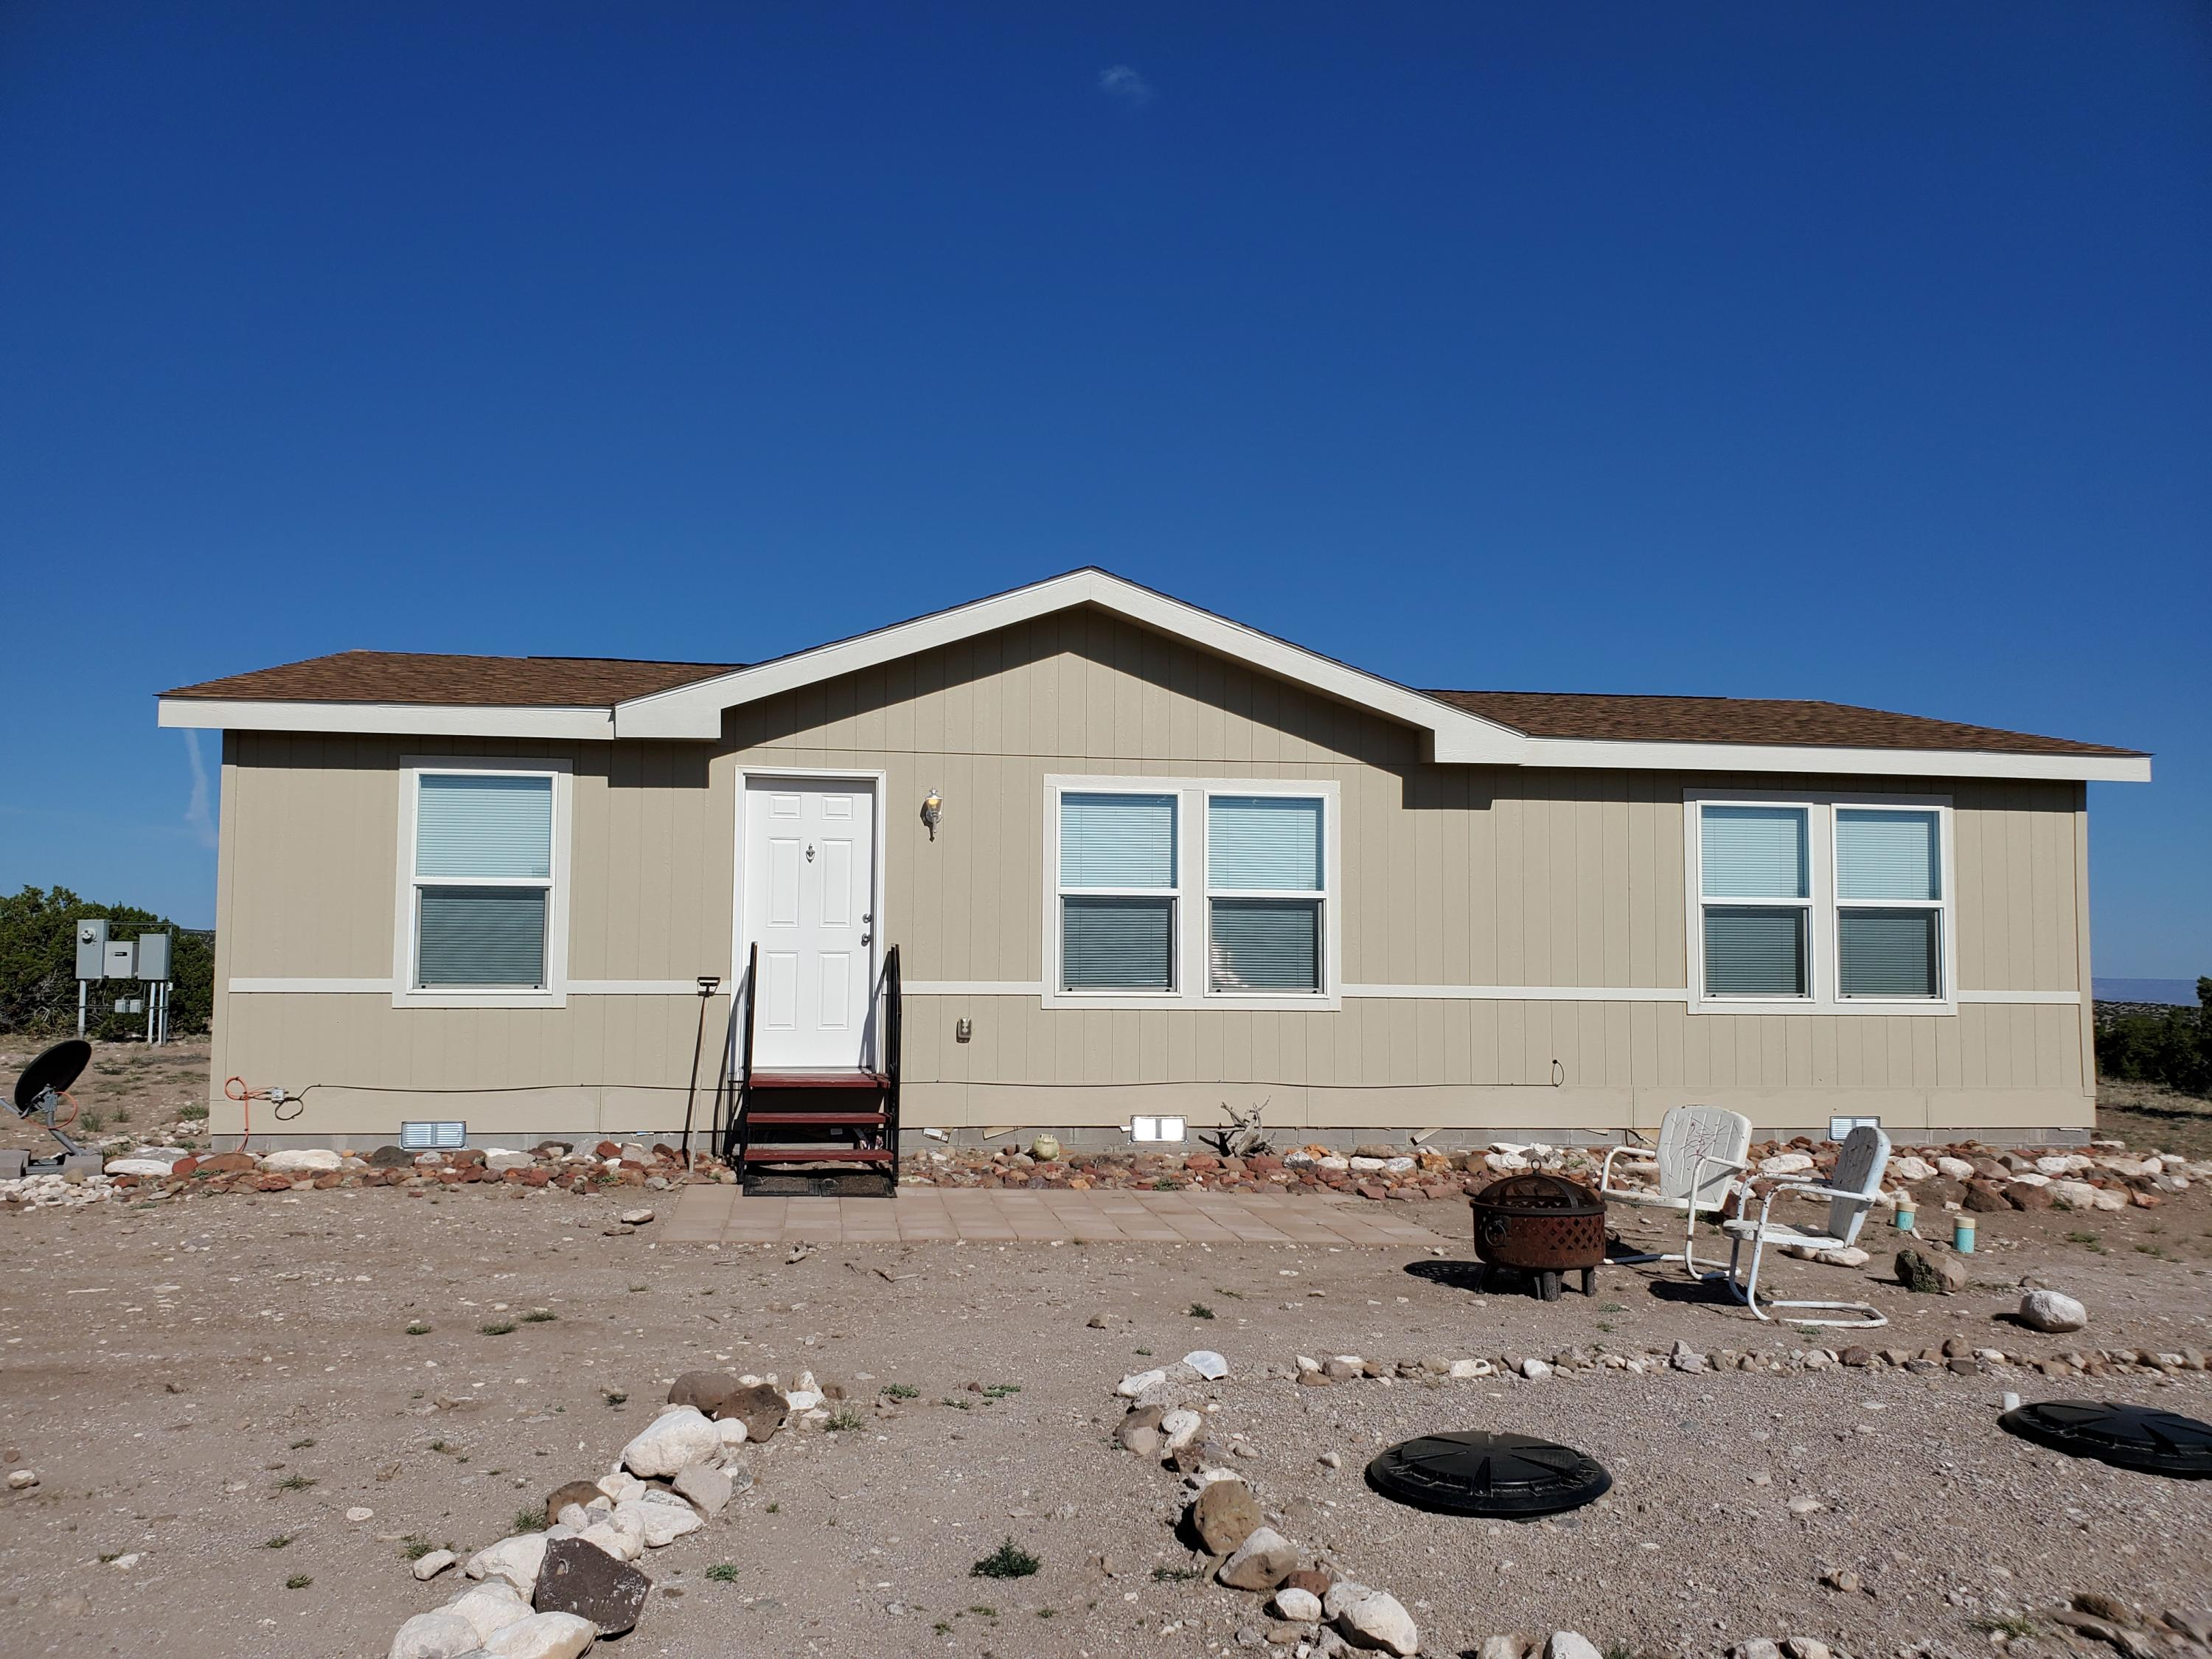 37 Dry Lake Canyon Road, Magdalena, NM 87825 - Magdalena, NM real estate listing